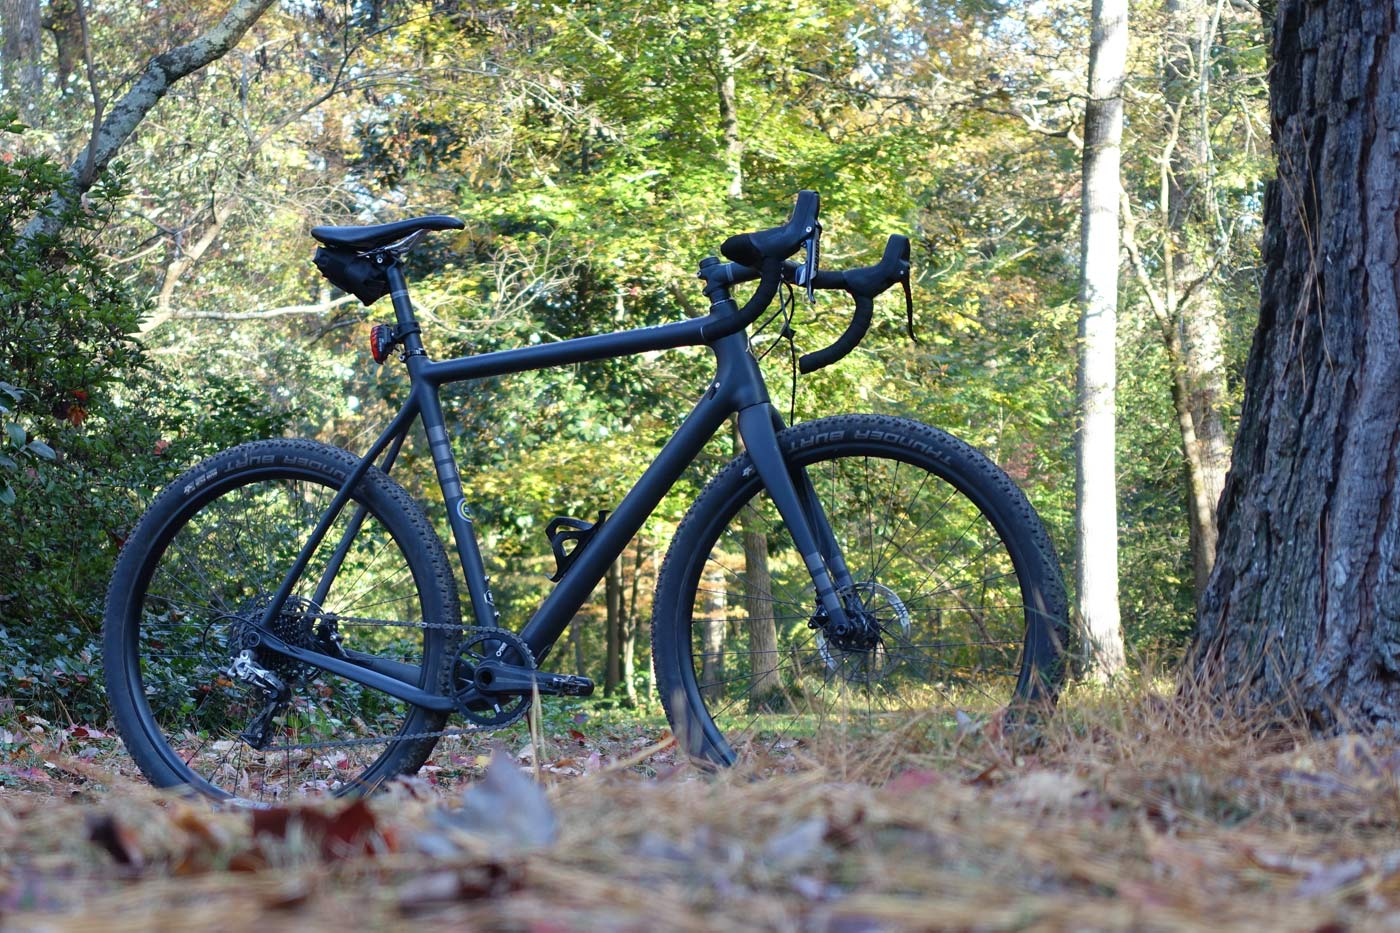 2018 Ibis Hakka MX gravel cyclocross bike ride review and actual weights